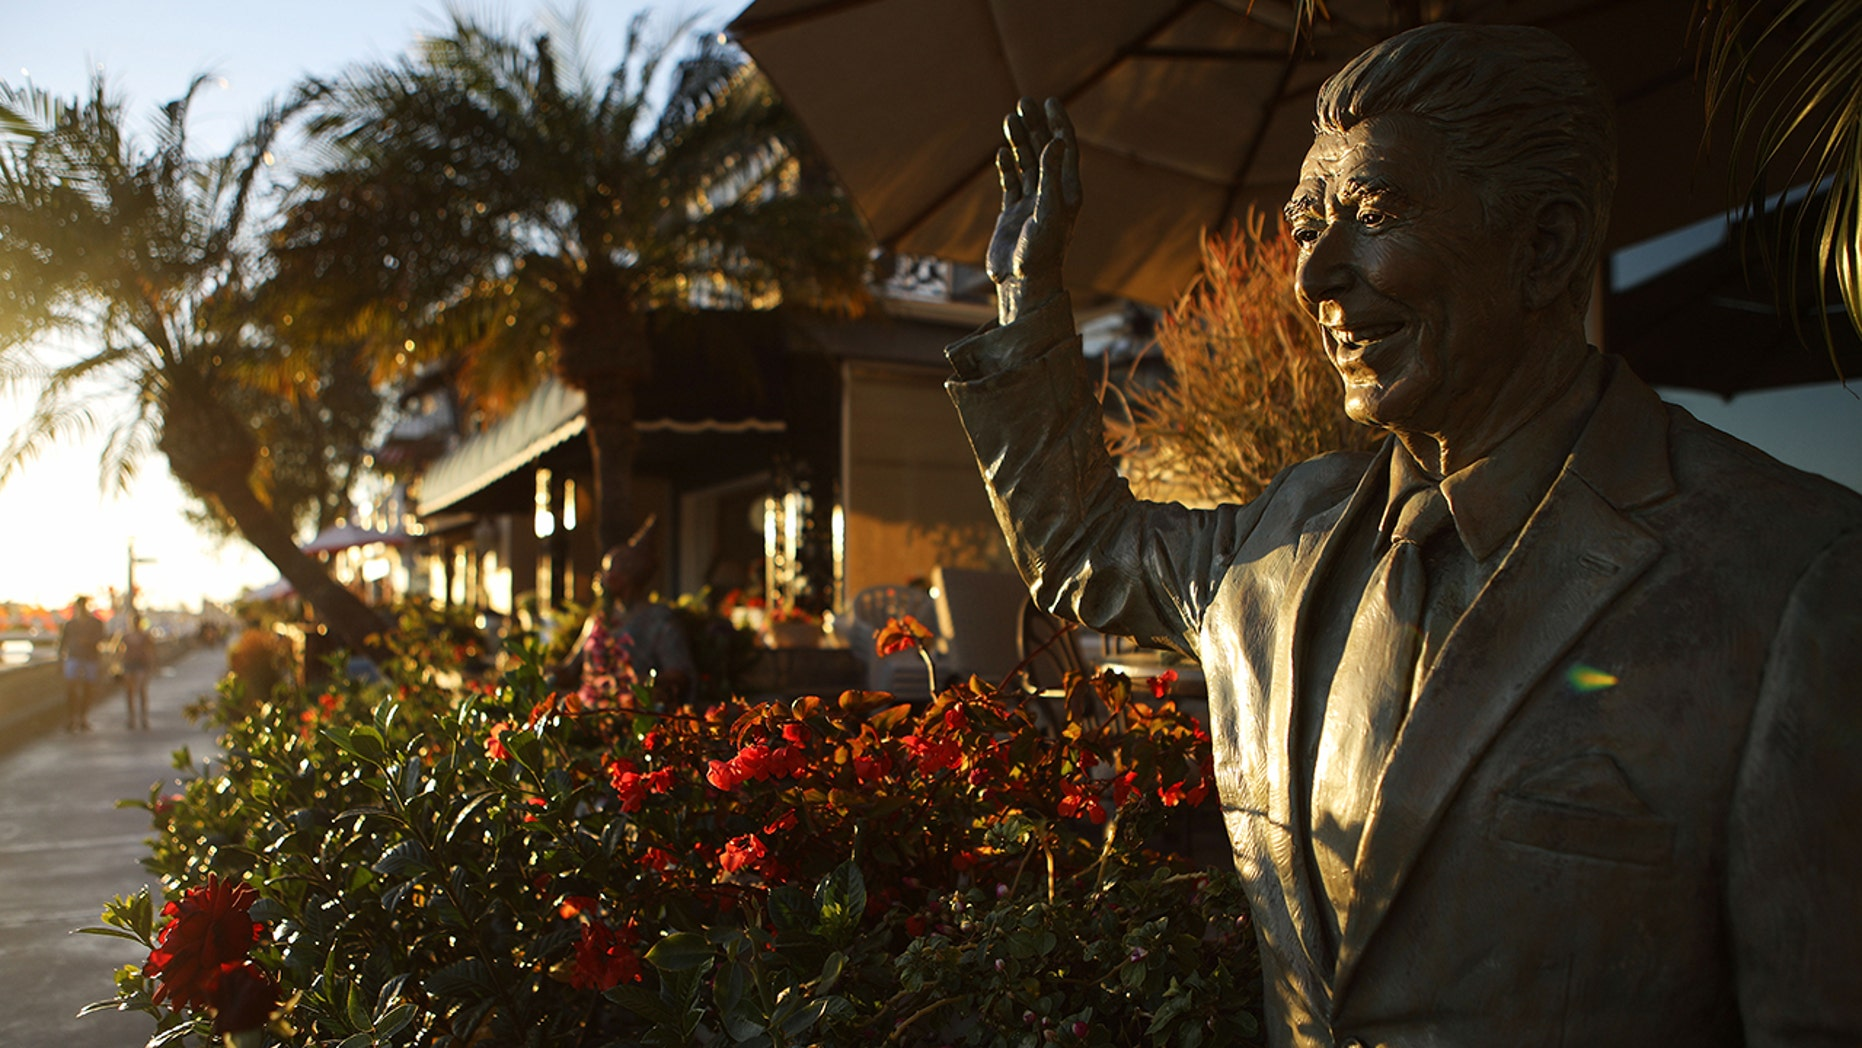 A statue of former President Ronald Reagan stands in front of a home on Orange County's Balboa Island on Oct. 20, 2018 in Newport Beach, California. (Photo by Mario Tama/Getty Images)